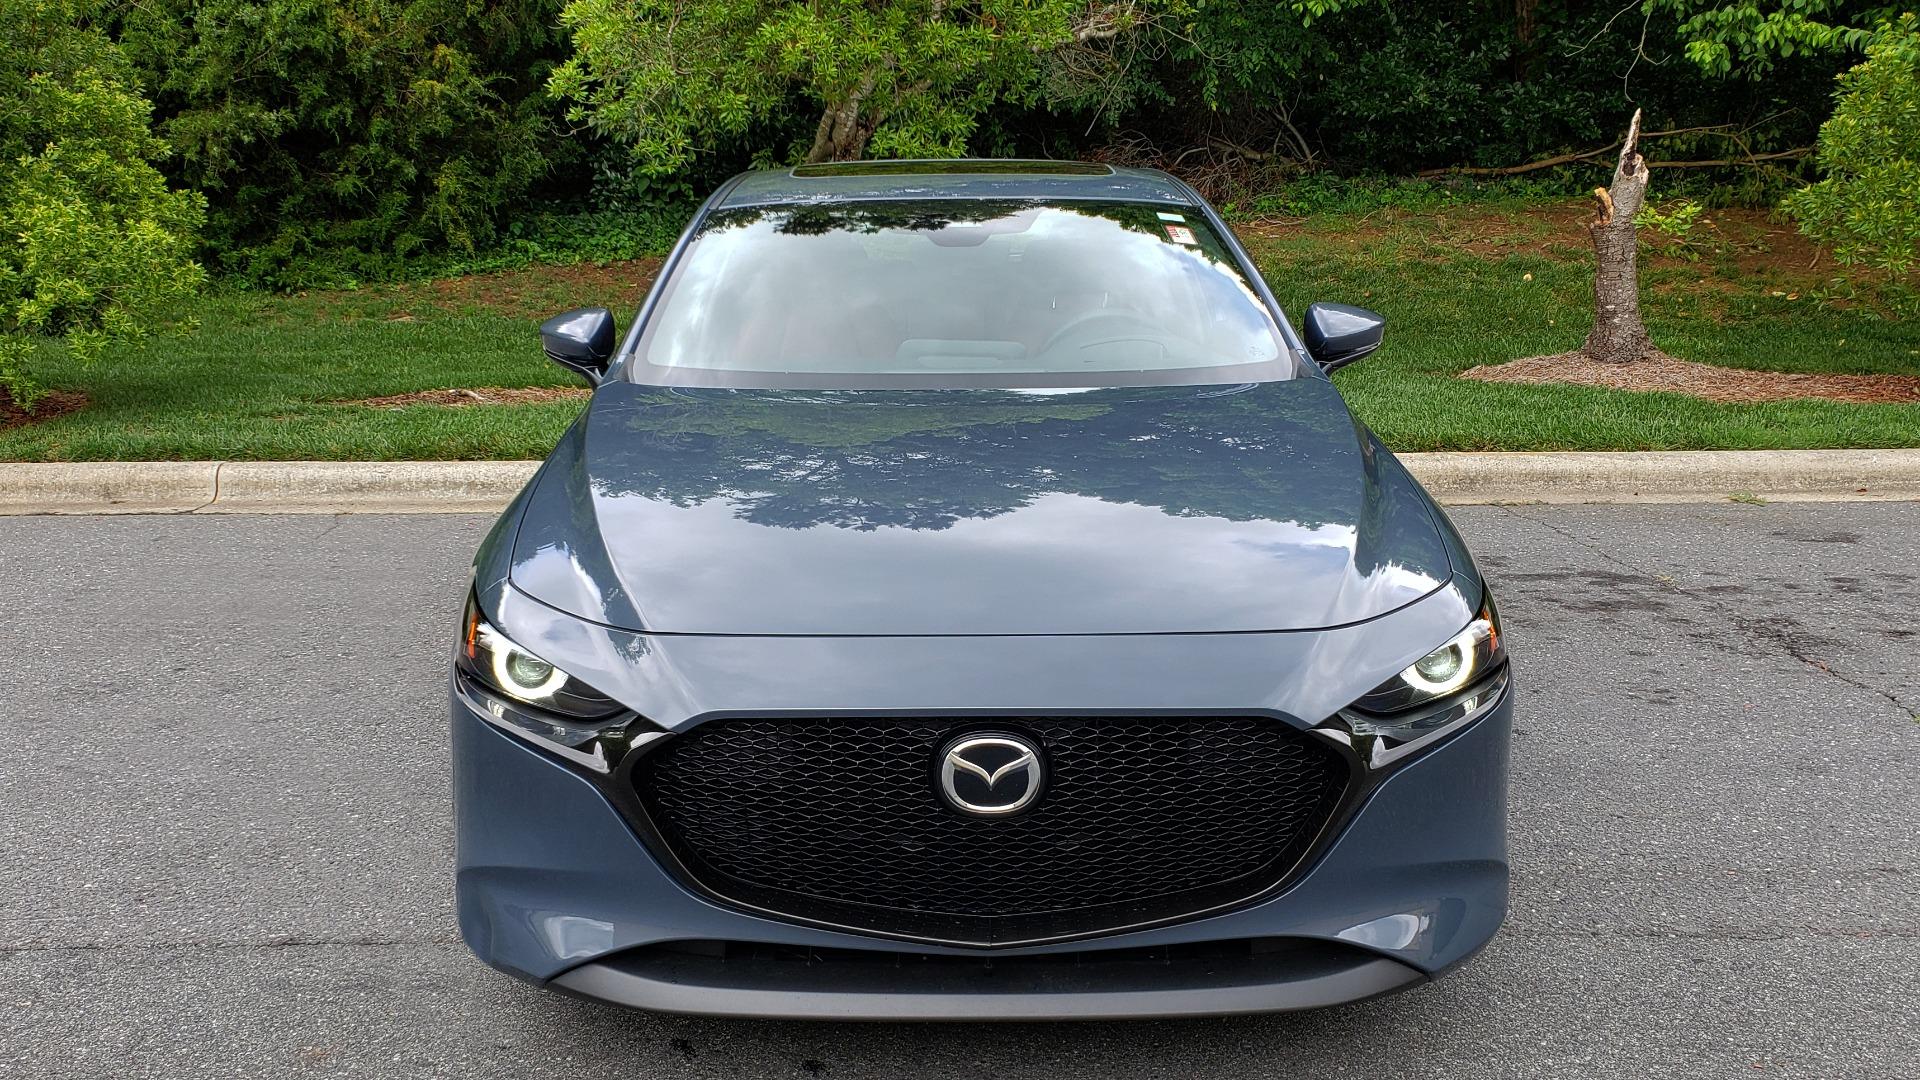 Used 2019 Mazda MAZDA3 HATCHBACK PREMIUM PKG / AUTO / 18IN BLACK ALLOY WHEELS / BOSE / LEATHER for sale Sold at Formula Imports in Charlotte NC 28227 17